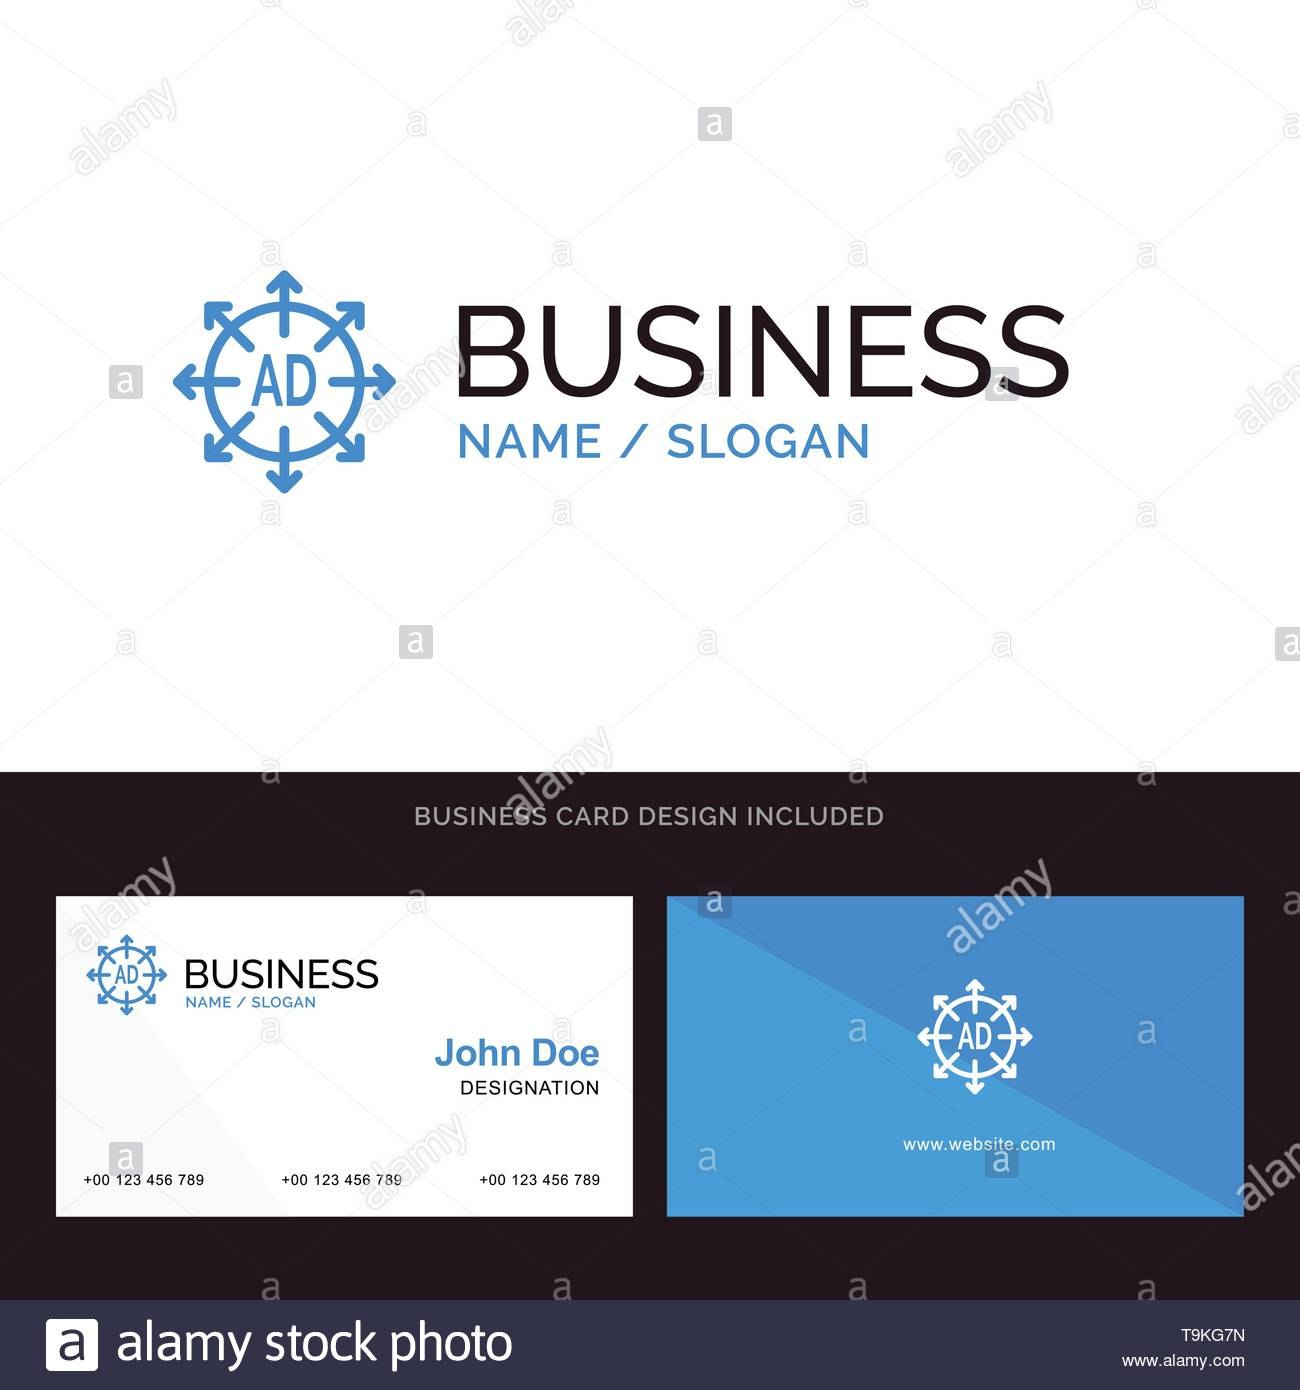 Advertising Submission Advertising Submission Ad Blue Business Inside Advertising Card Template